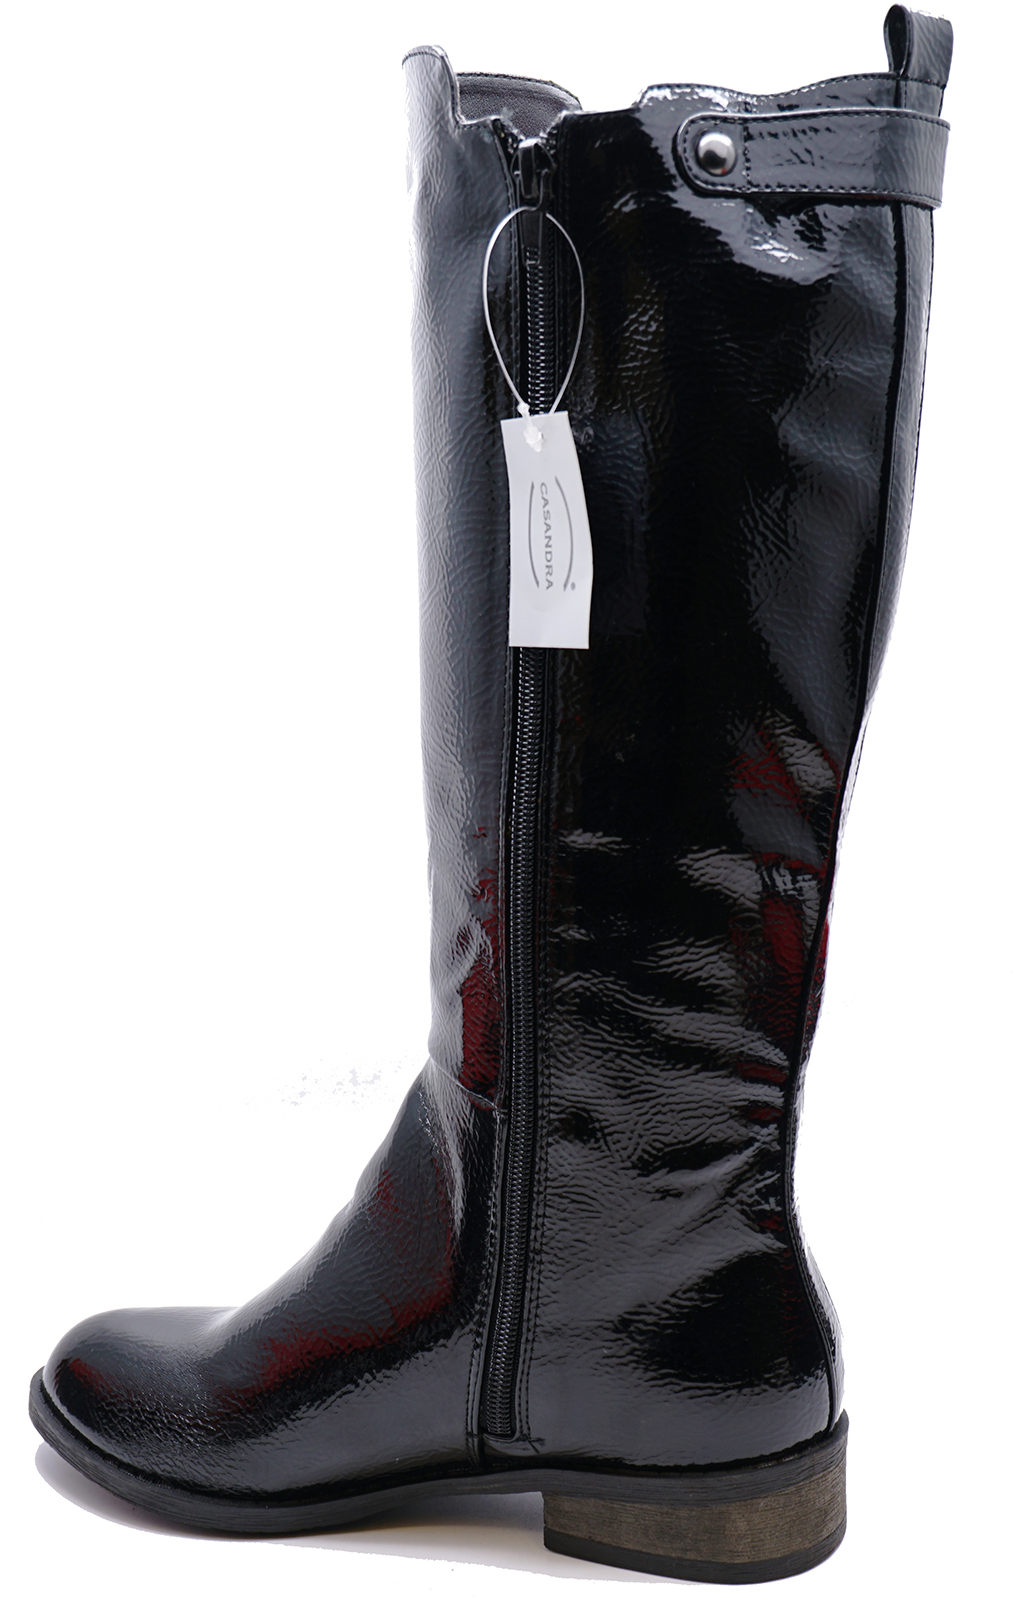 LADIES-BLACK-PATENT-STRETCH-ZIP-UP-KNEE-HIGH-TALL-RIDING-BOOTS-COMFY-SHOES-3-8 thumbnail 8